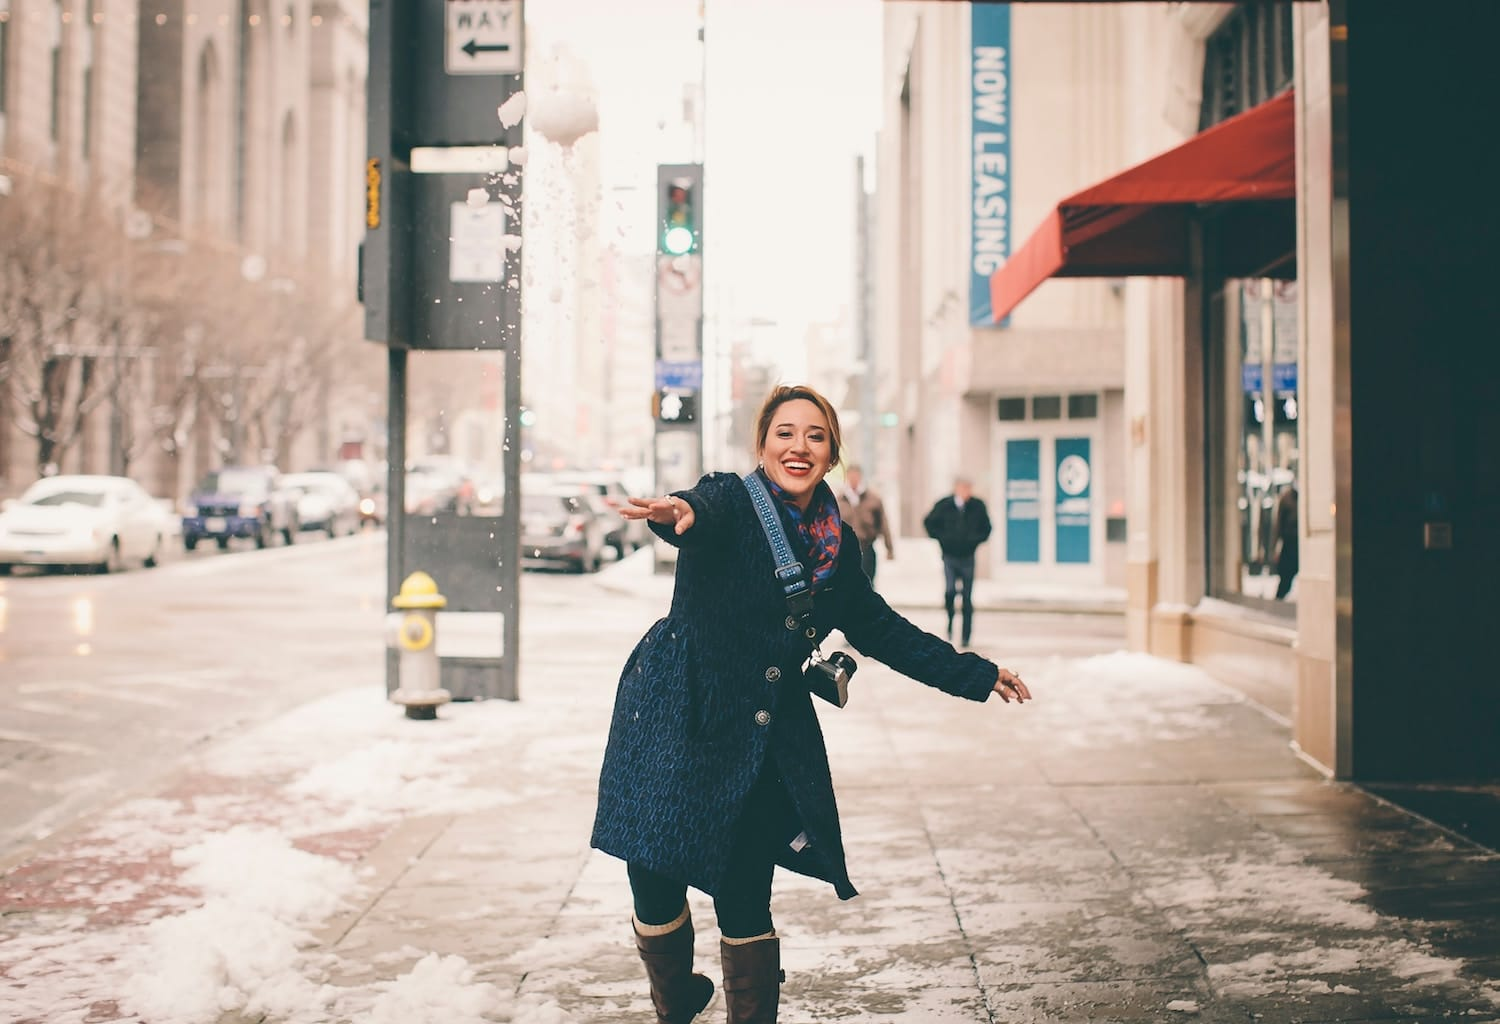 4 Ways to Keep a Positive Mindset This Winter